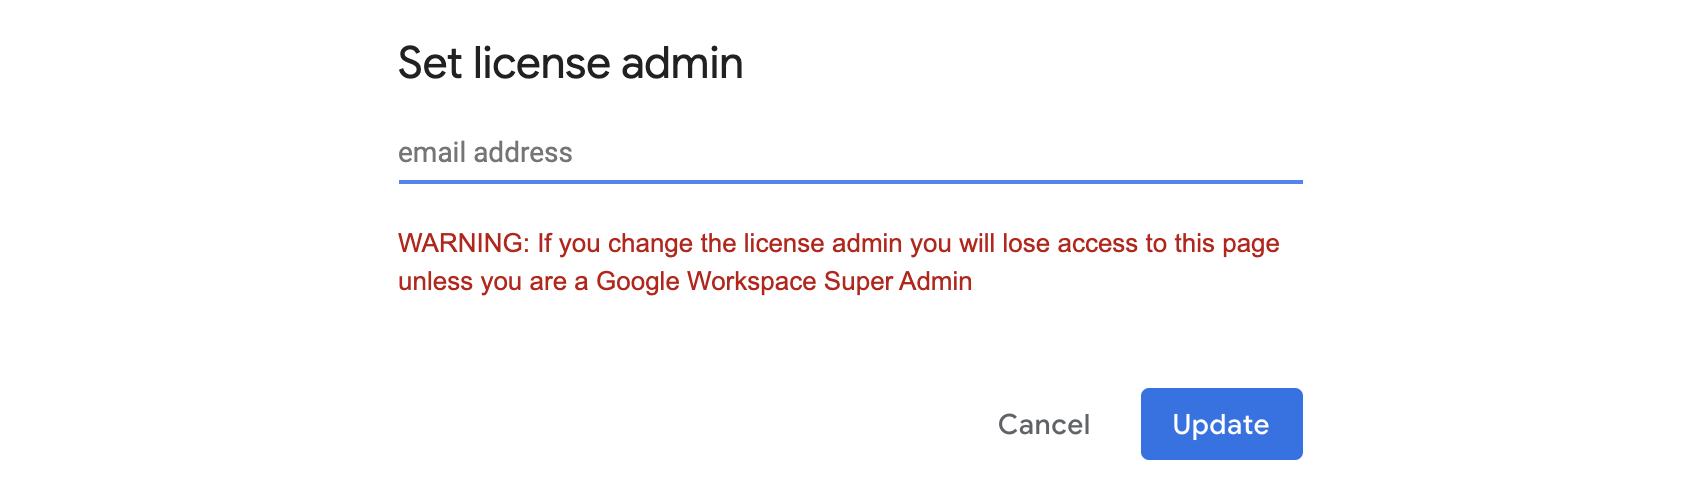 Enter the email address of the new license administrator